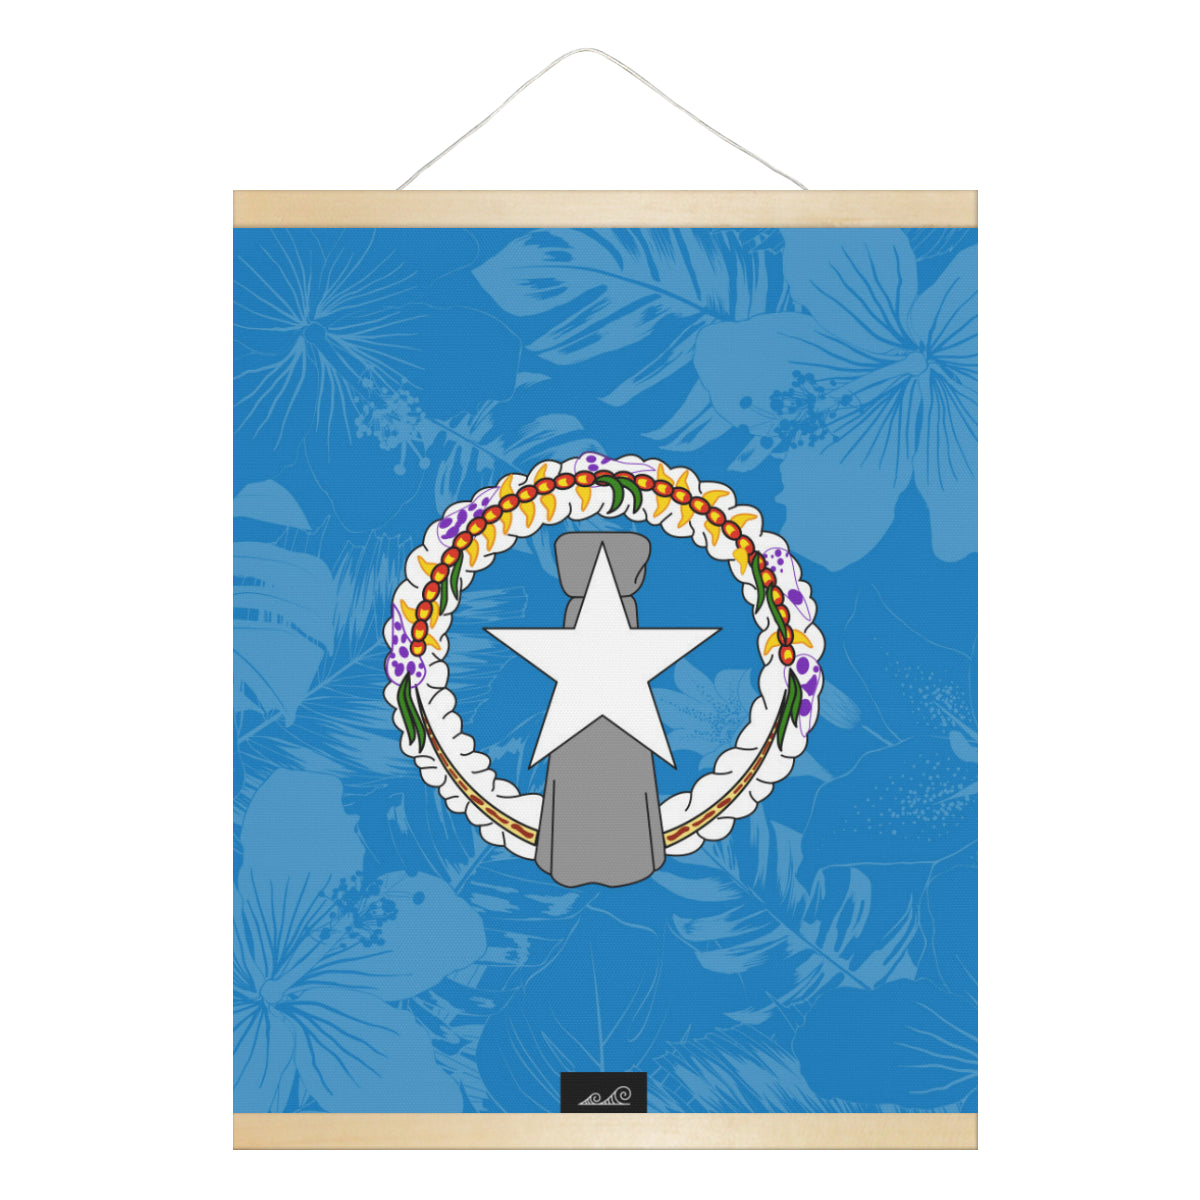 CNMI Floral Flag Hanging Canvas Poster with Wood Frame